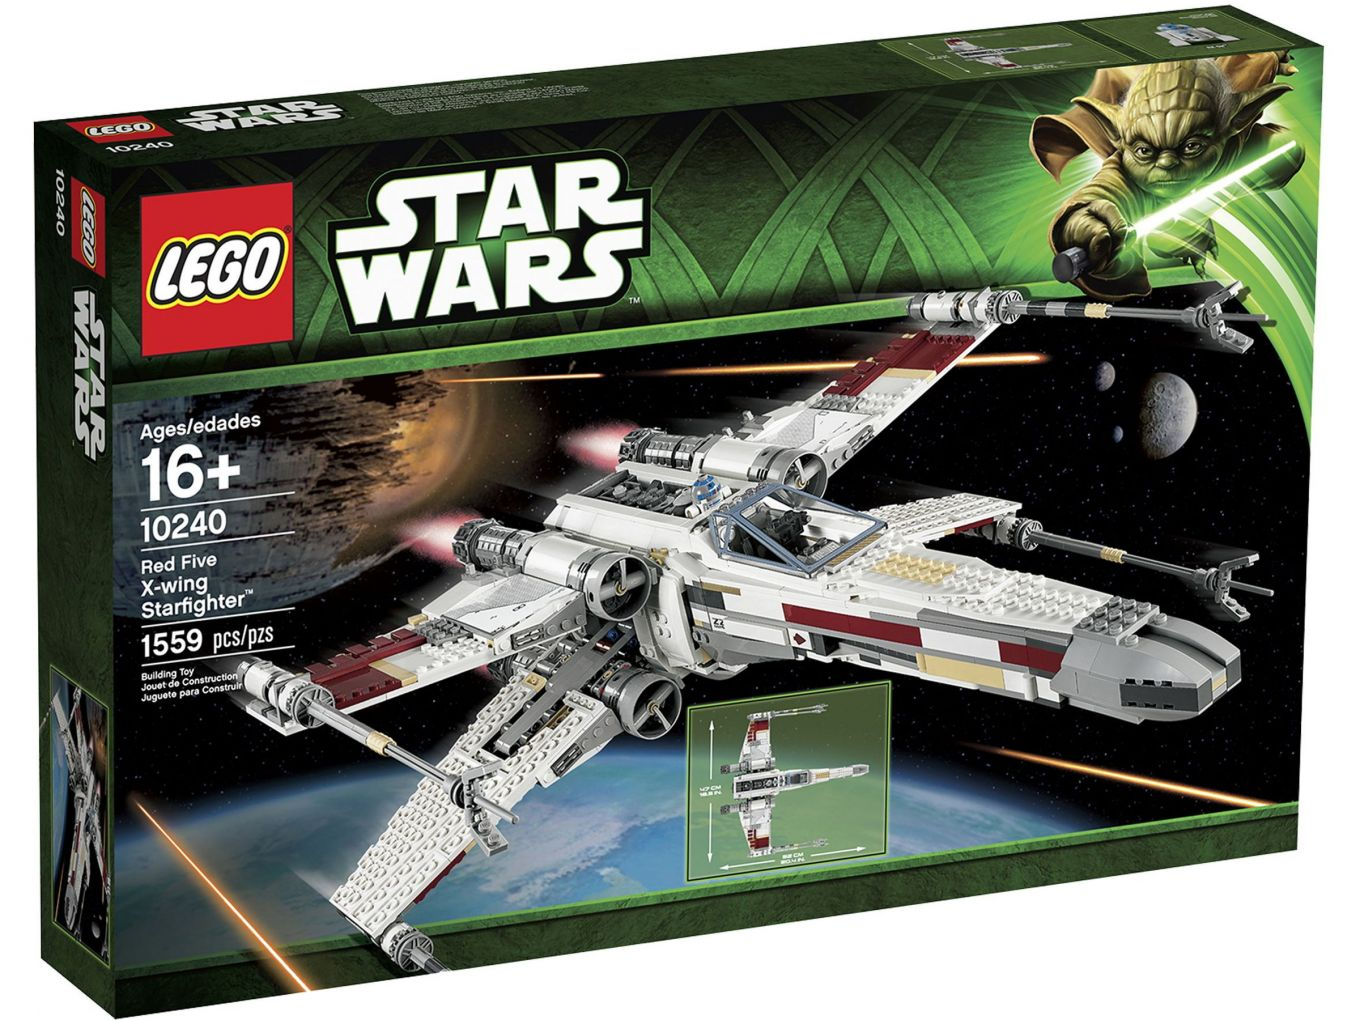 LEGO Star Wars 10240 Red Five X-wing Starfighter